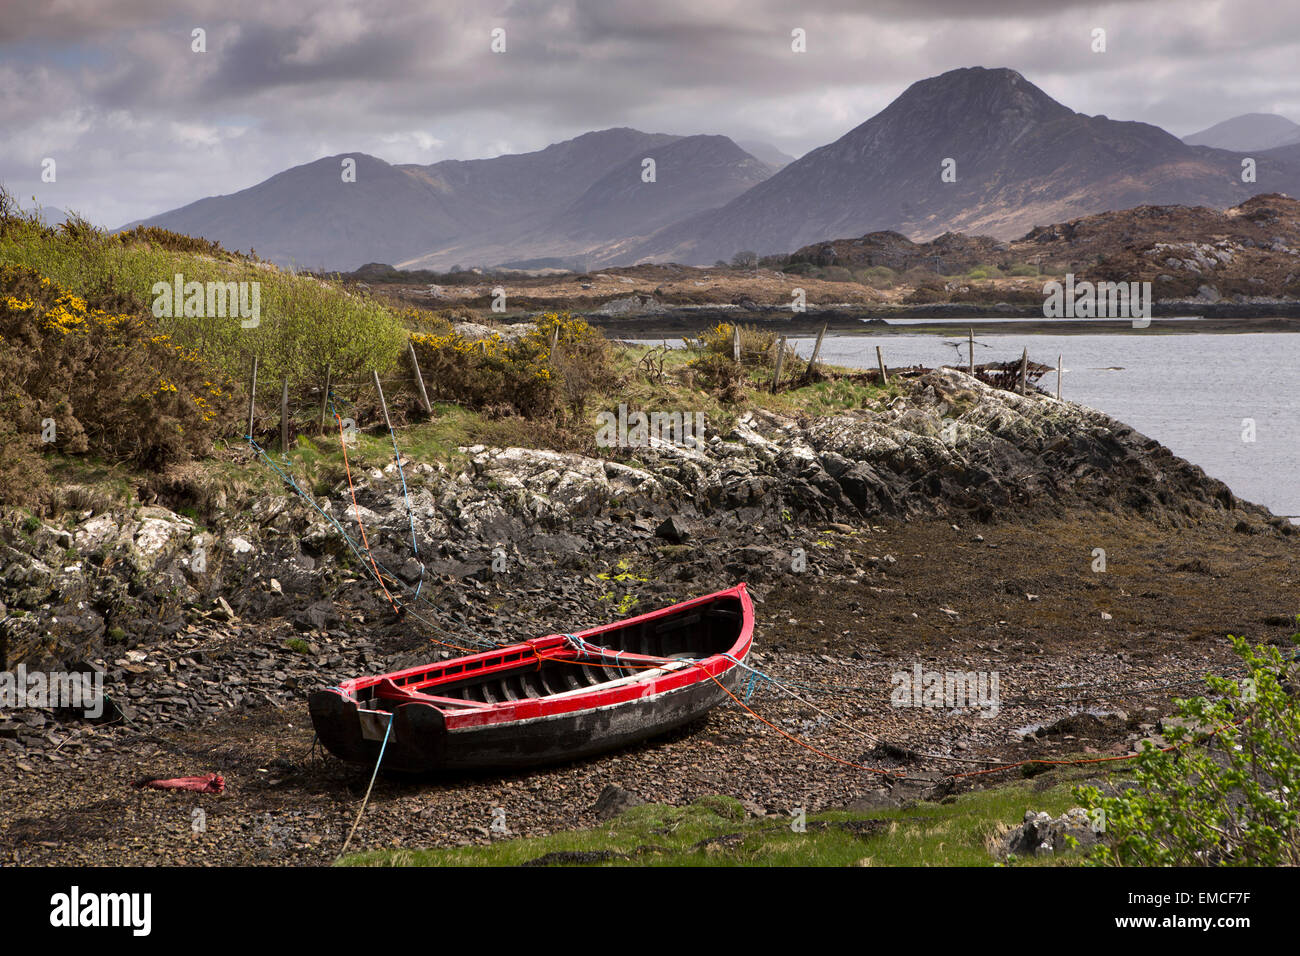 Ireland, Co Galway, Connemara Loop, Lettermore, red boat moored beside Ballynakill Harbour - Stock Image